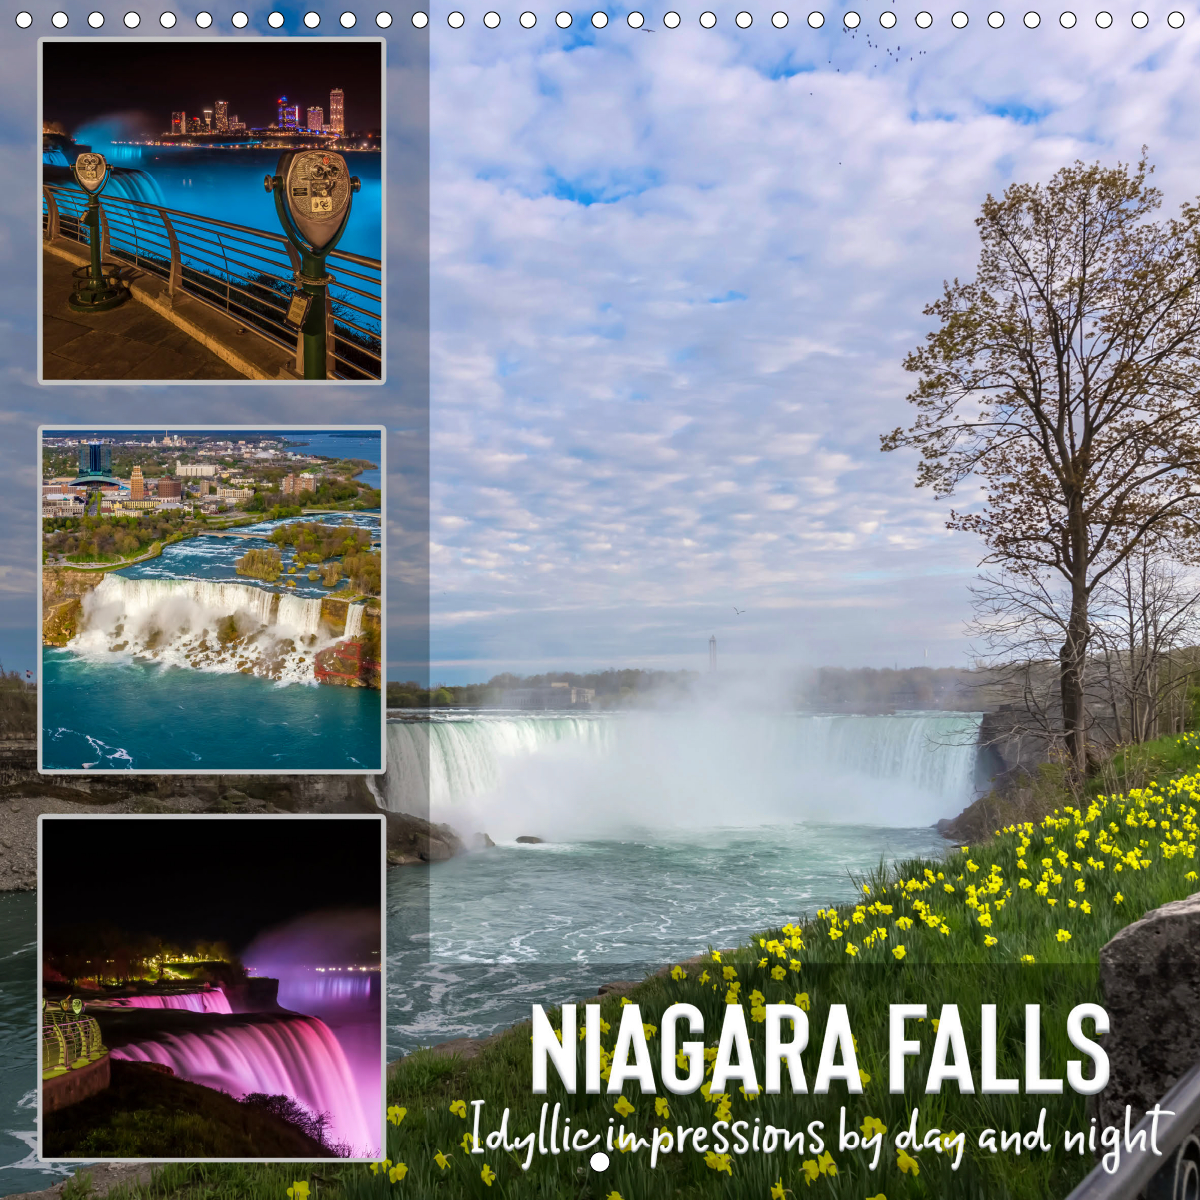 Calendar front - NIAGARA FALLS Idyllic impressions by day and night